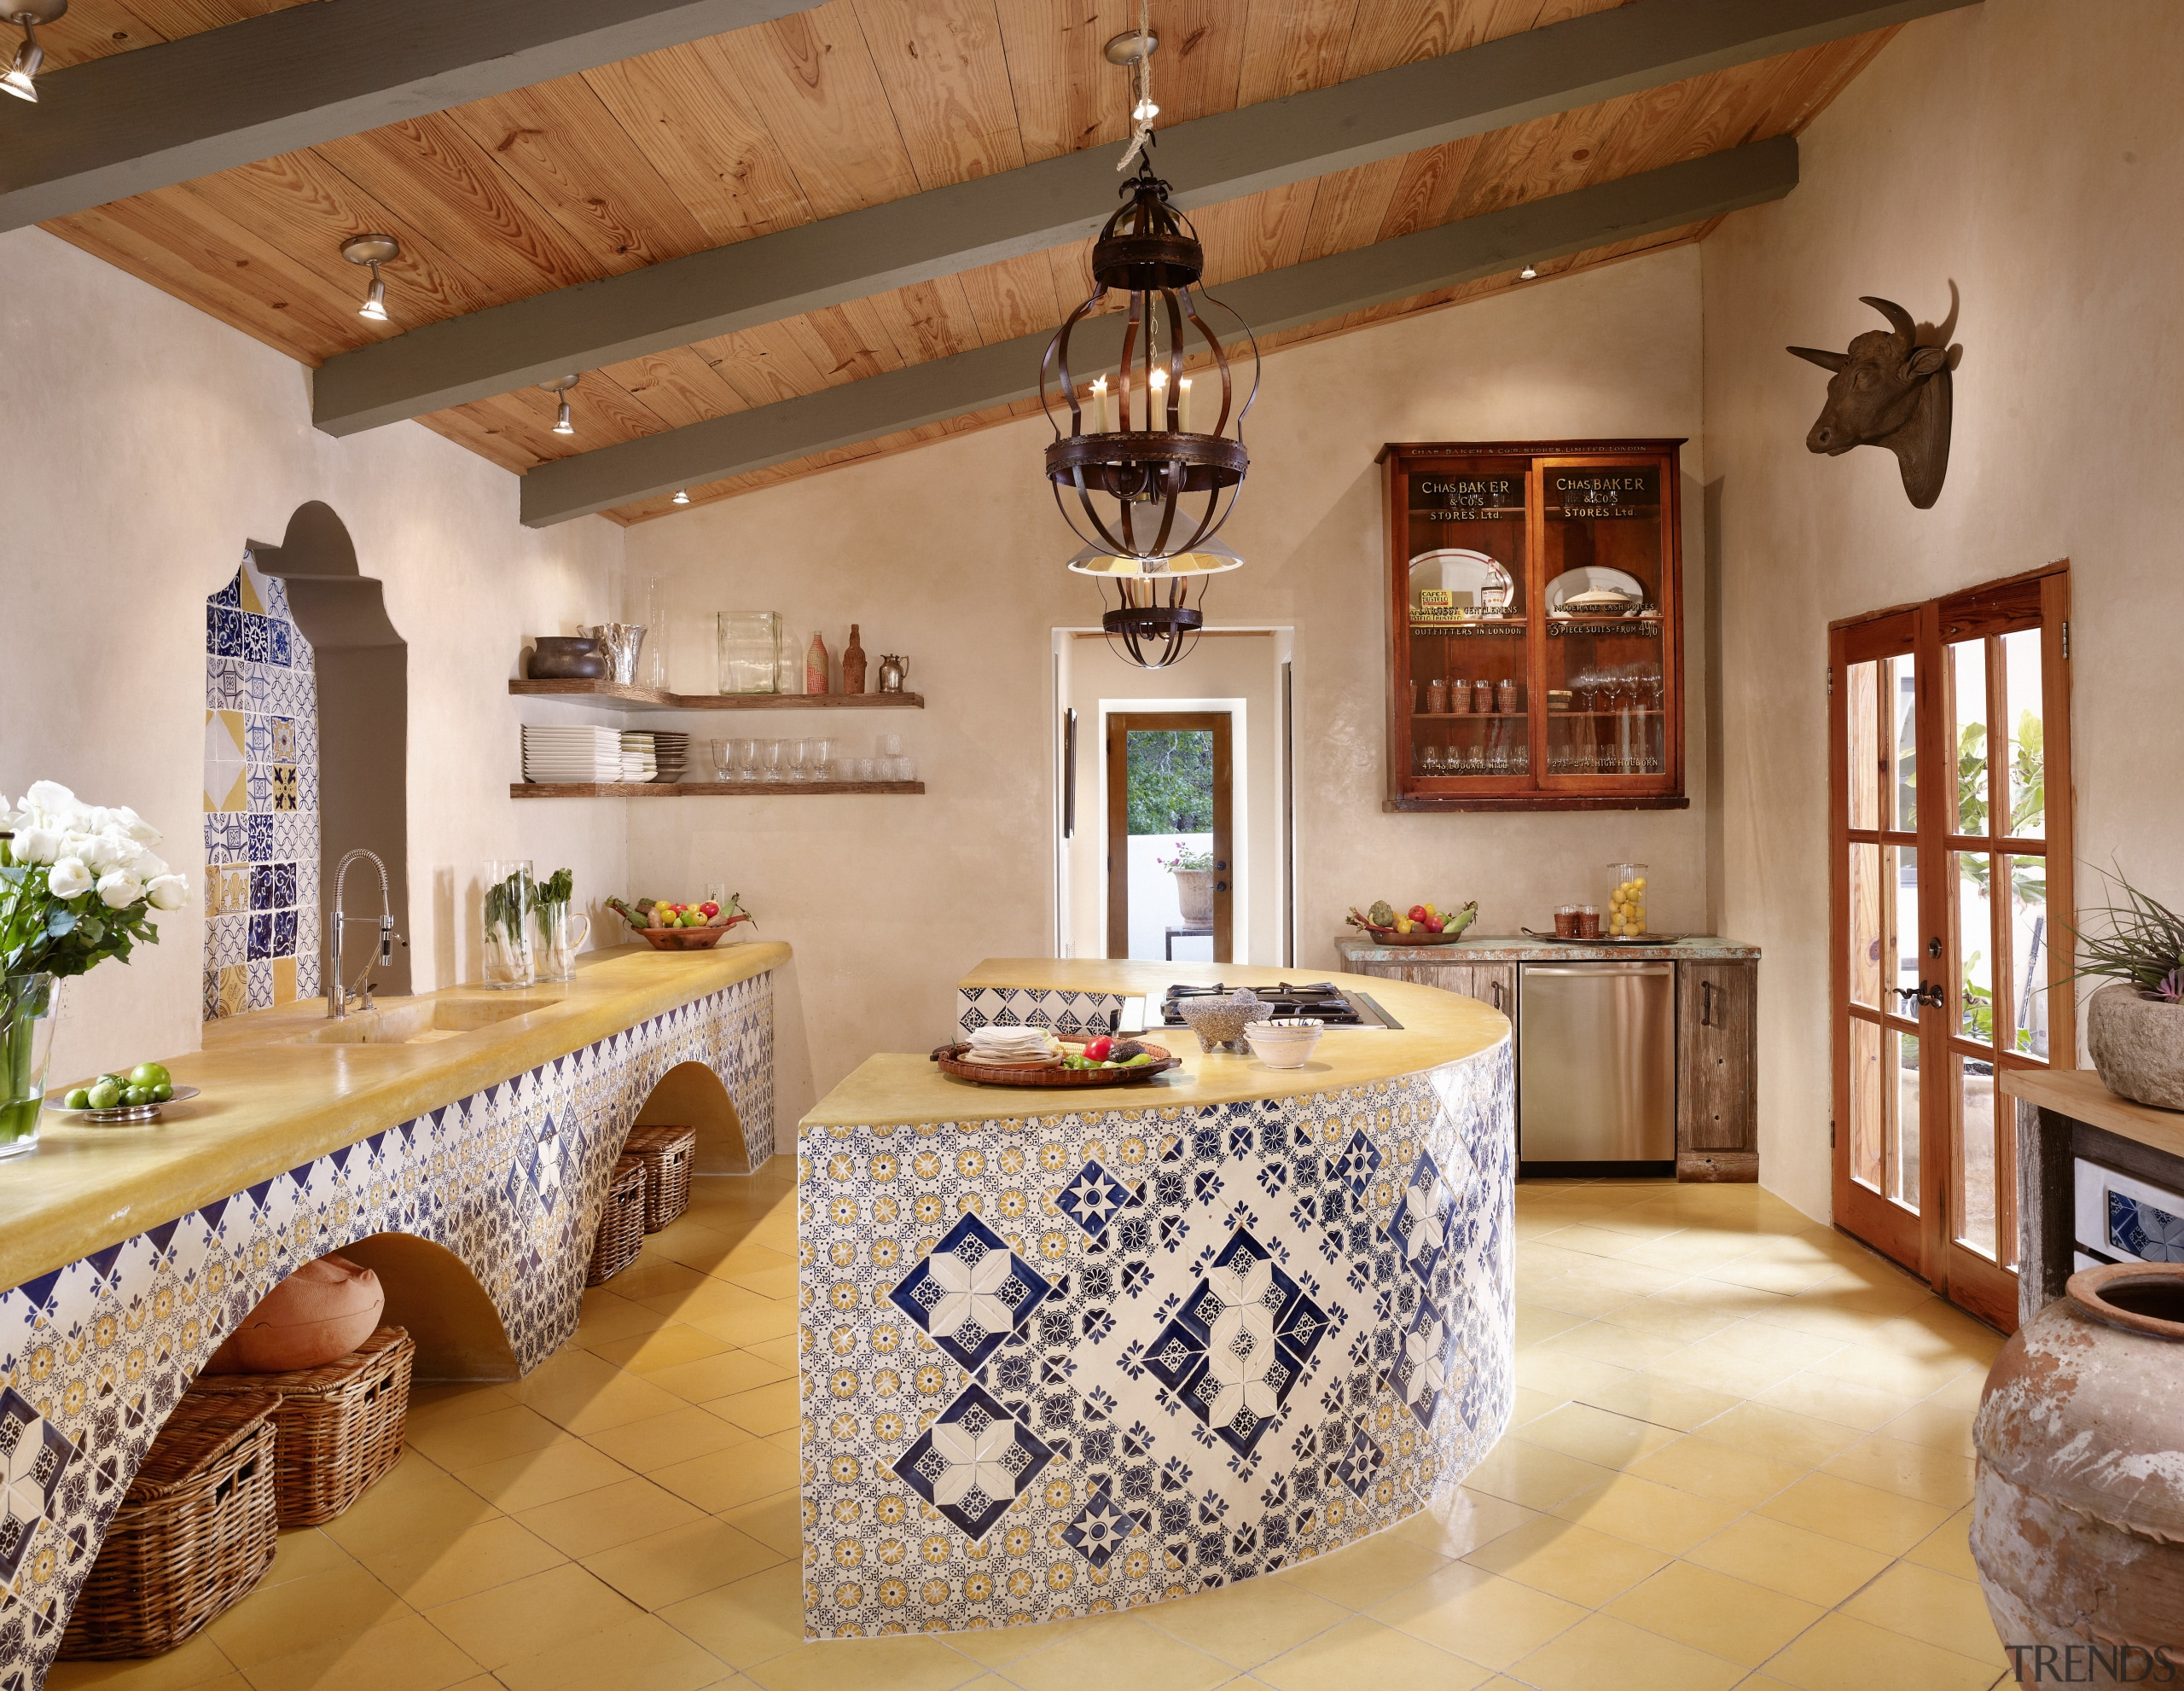 View of Spanish style kitchen with tile ceiling, countertop, estate, home, interior design, kitchen, real estate, room, orange, brown